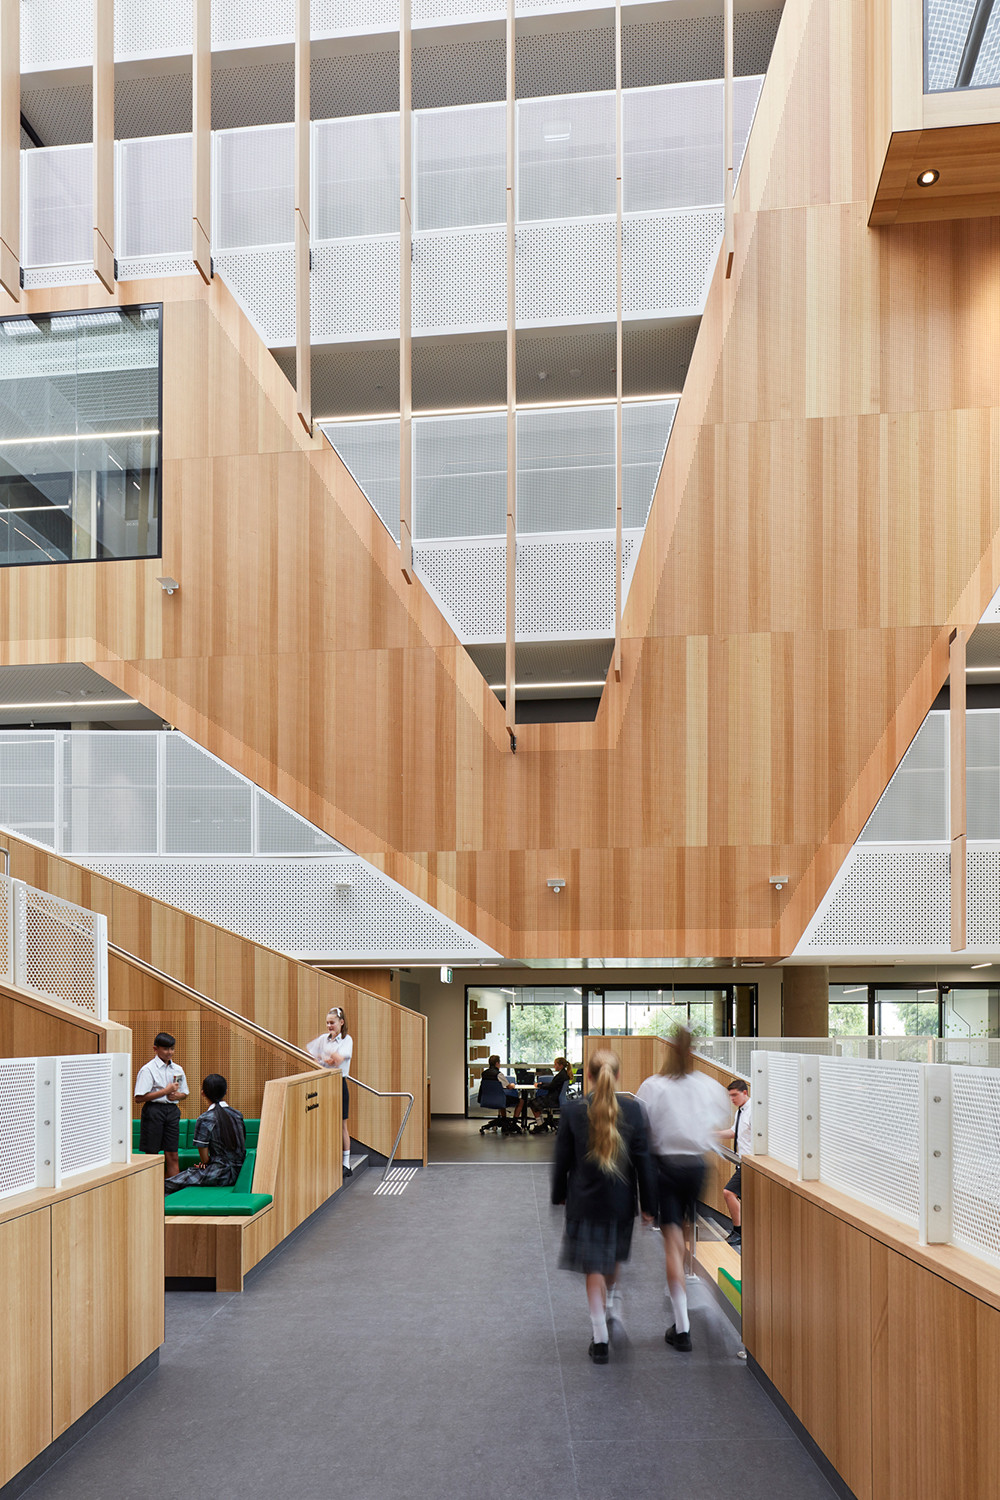 Adelaide Botanic High School by DesignInc, Cox Architecture, AECOM and TCL. Photo by Sam Noonan.